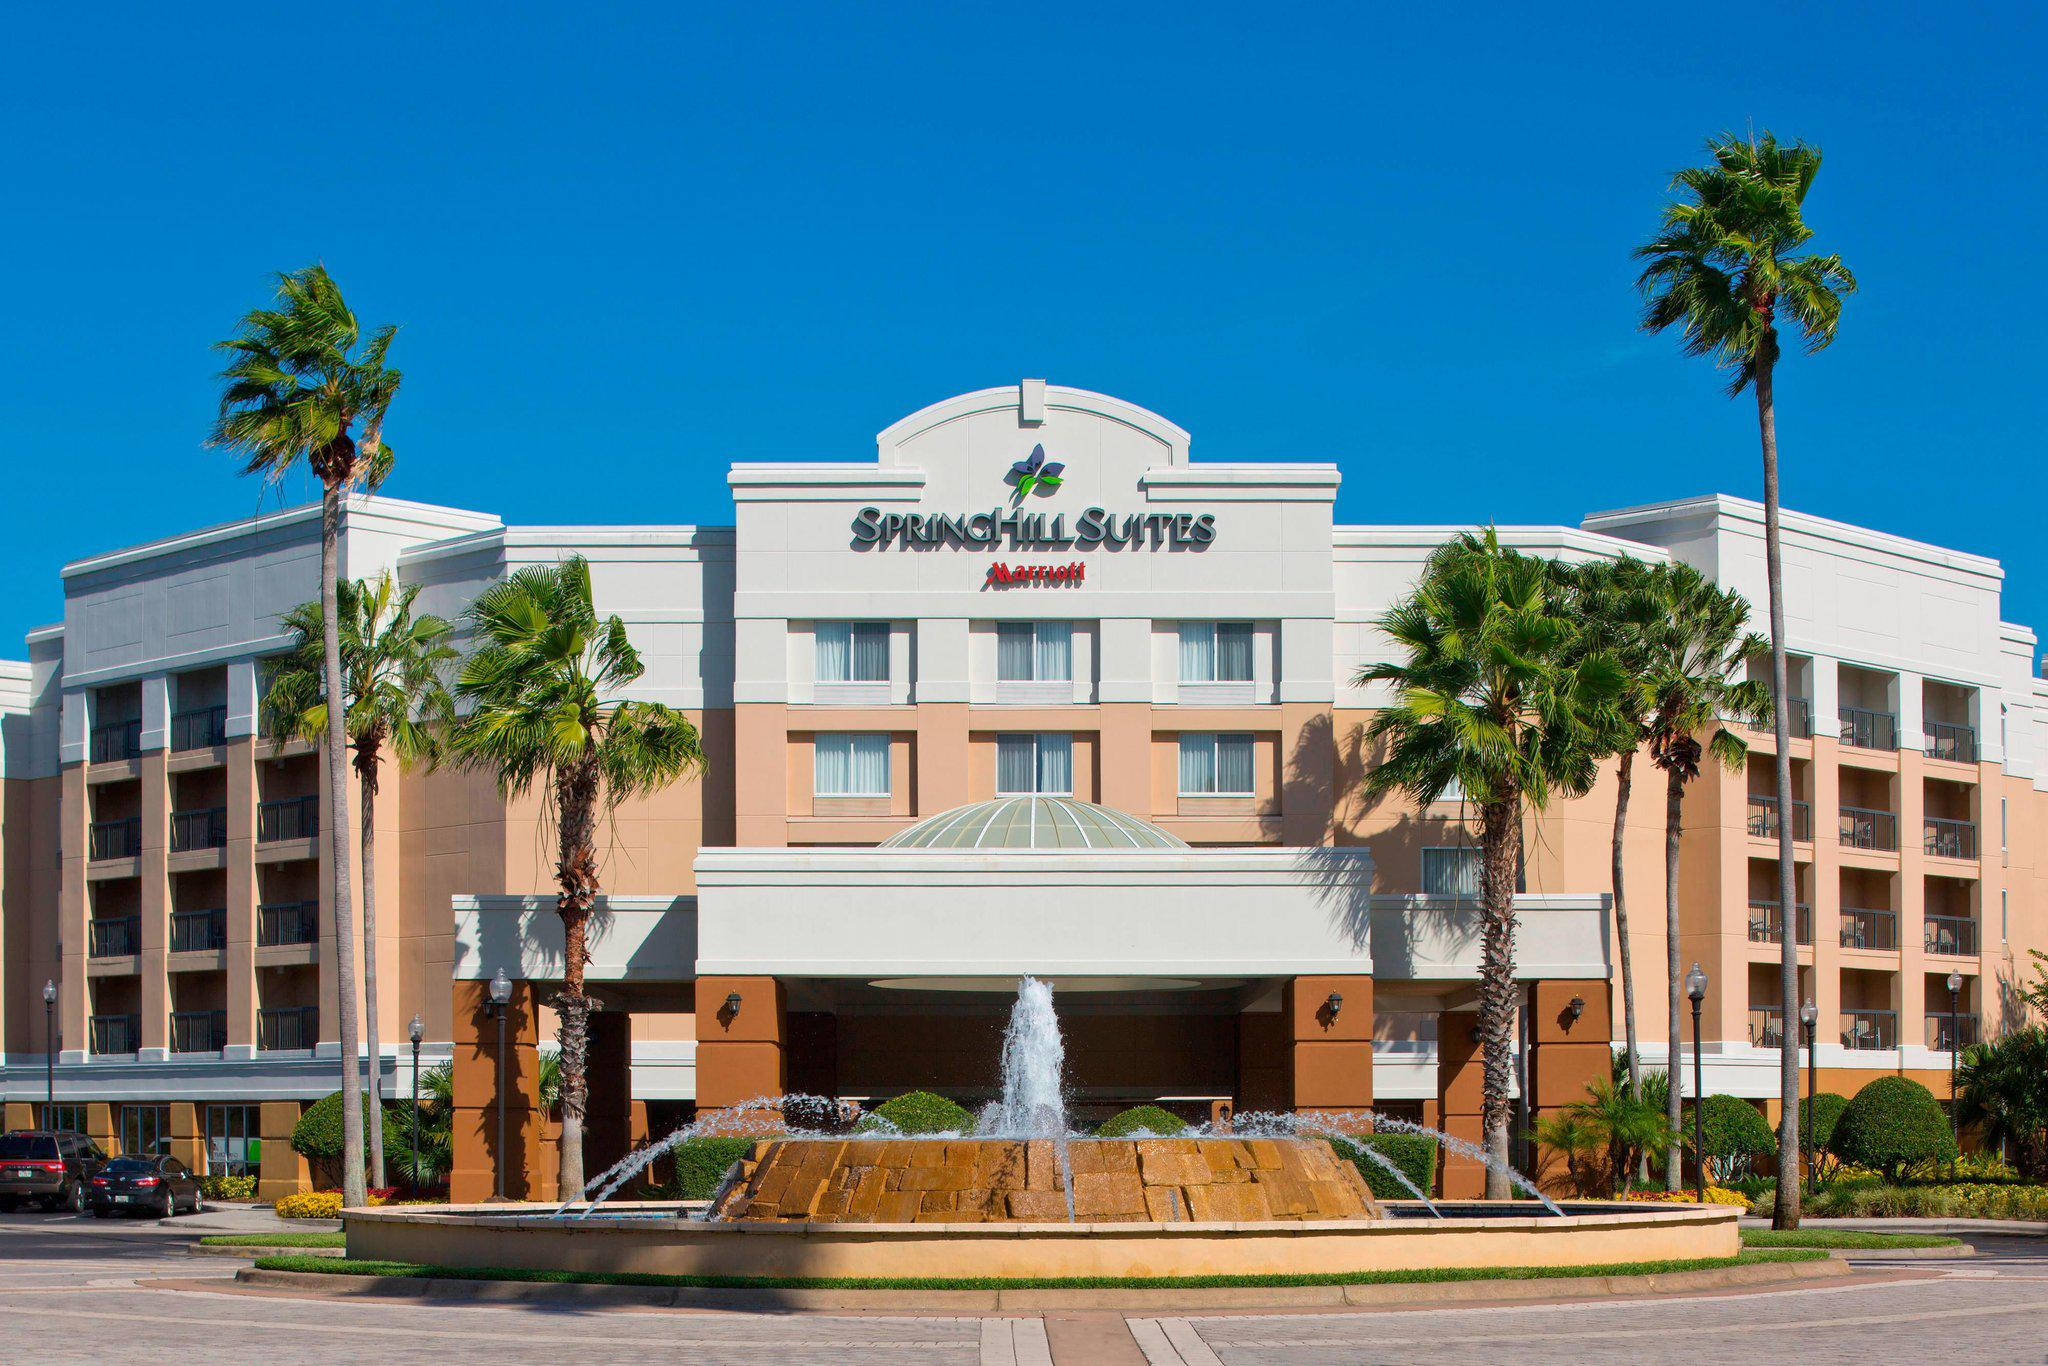 SpringHill Suites by Marriott Orlando Lake Buena Vista in Marriott Village